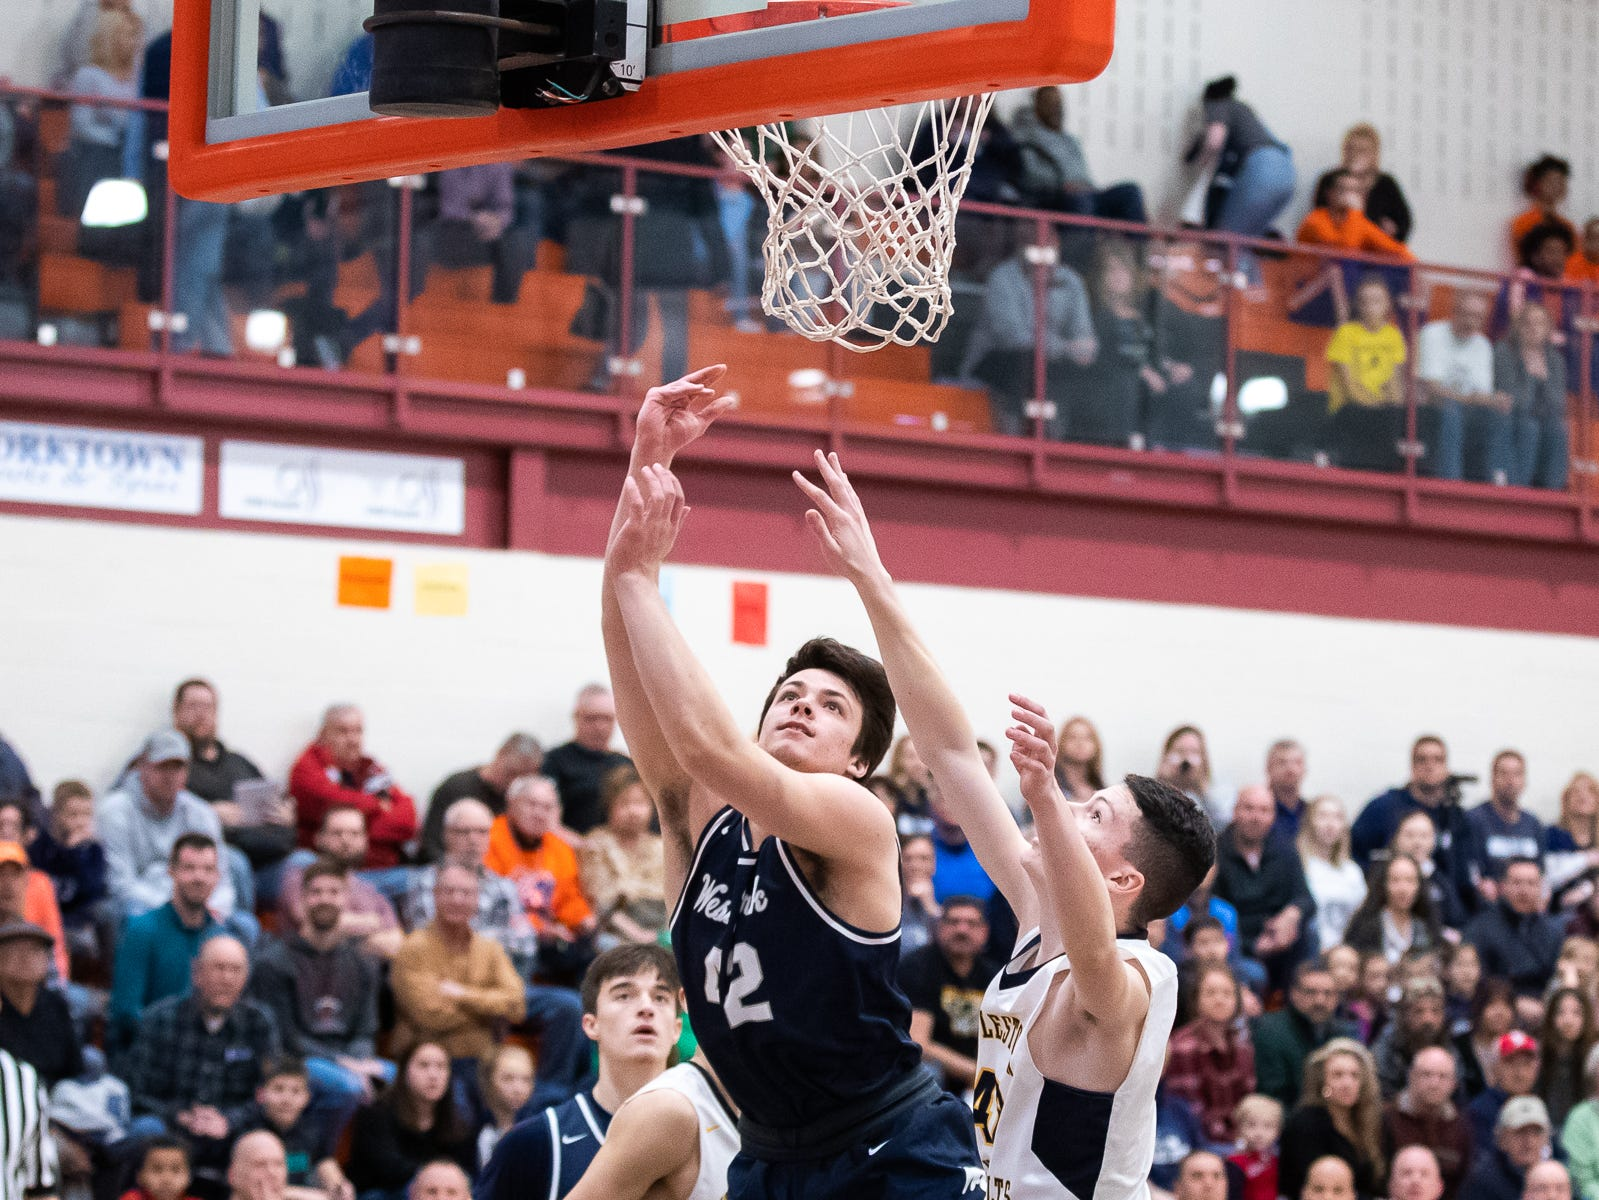 West York's Gabe Mummert (42) goes for a layup during the first half of the YAIAA boys' basketball quarterfinals between Littlestown and West York, Saturday, Feb. 9, 2019, at Central York High School. West York led Littlestown 33-31 at the half.